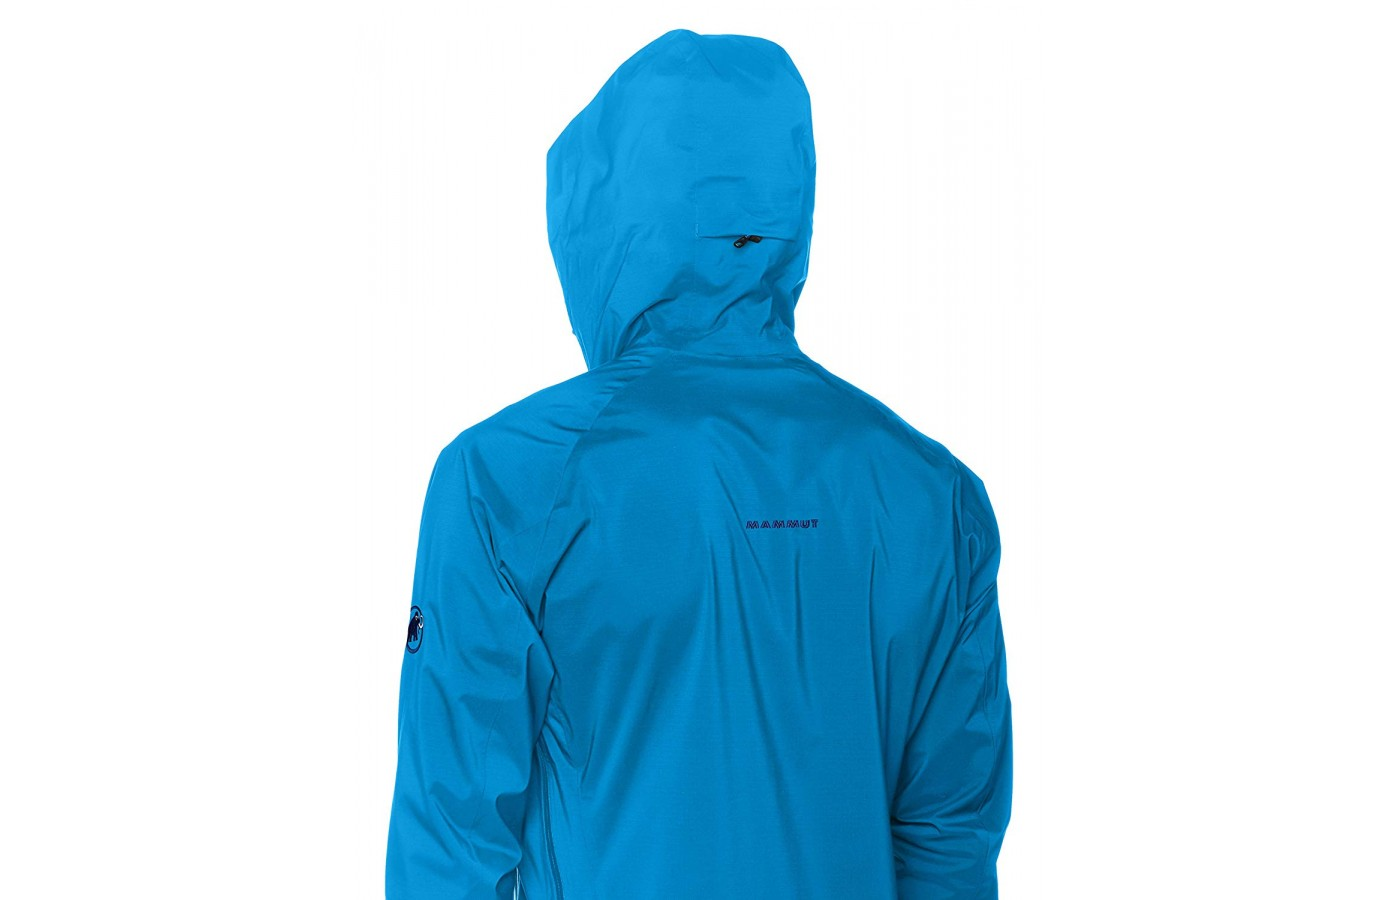 DRYtech stretch polyamide material and polyurethane membrane material are both designed with keeping the exterior moisture out and keeping you from overheating and sweating inside the jacket at the same time.